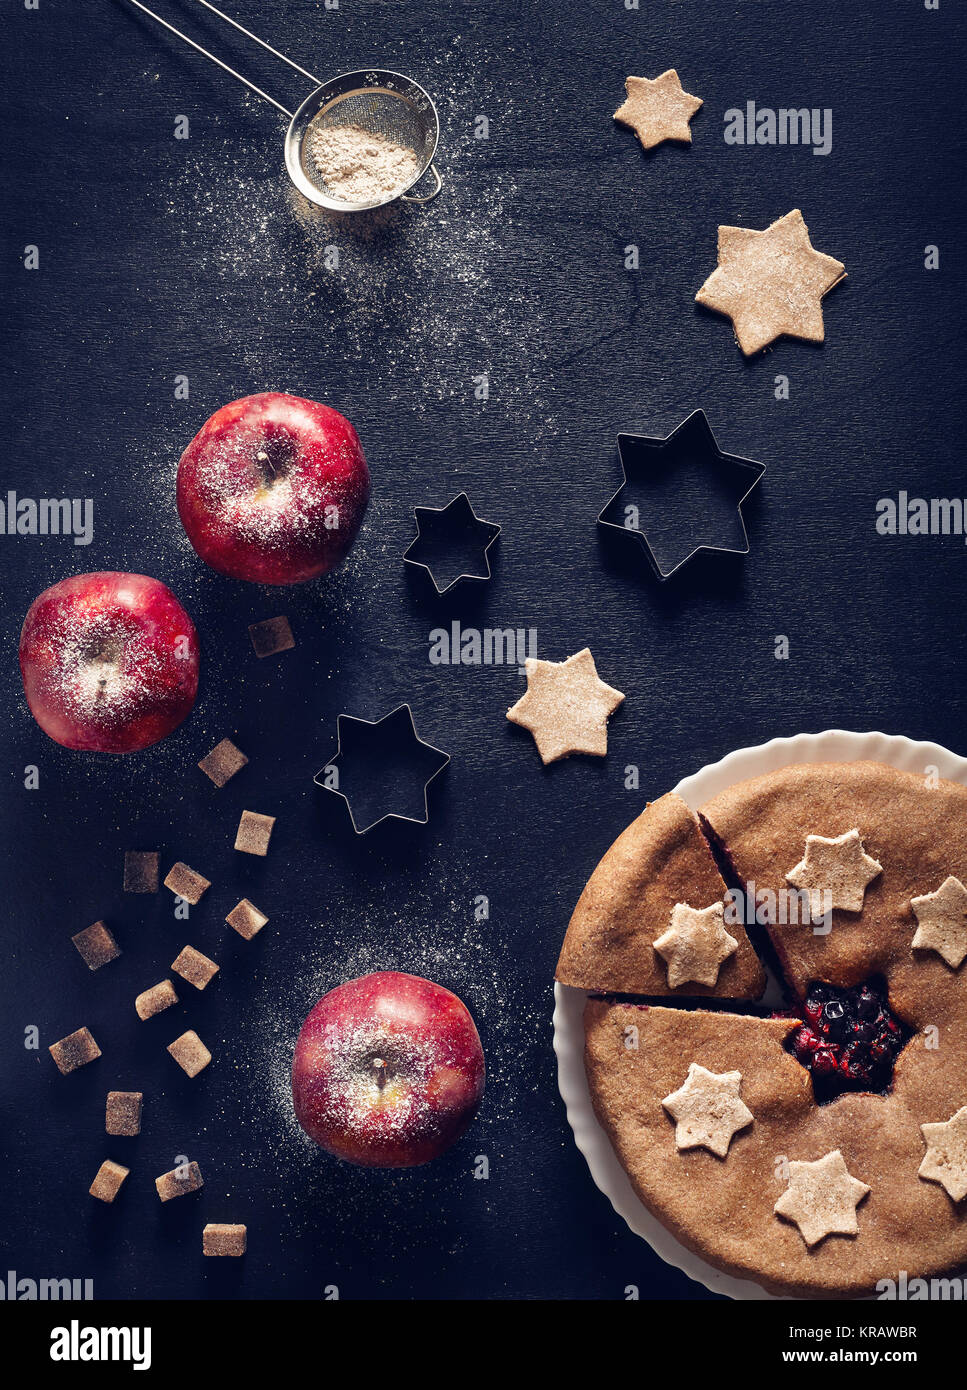 Vegan homemade pie from currant and apples on black background - Stock Image